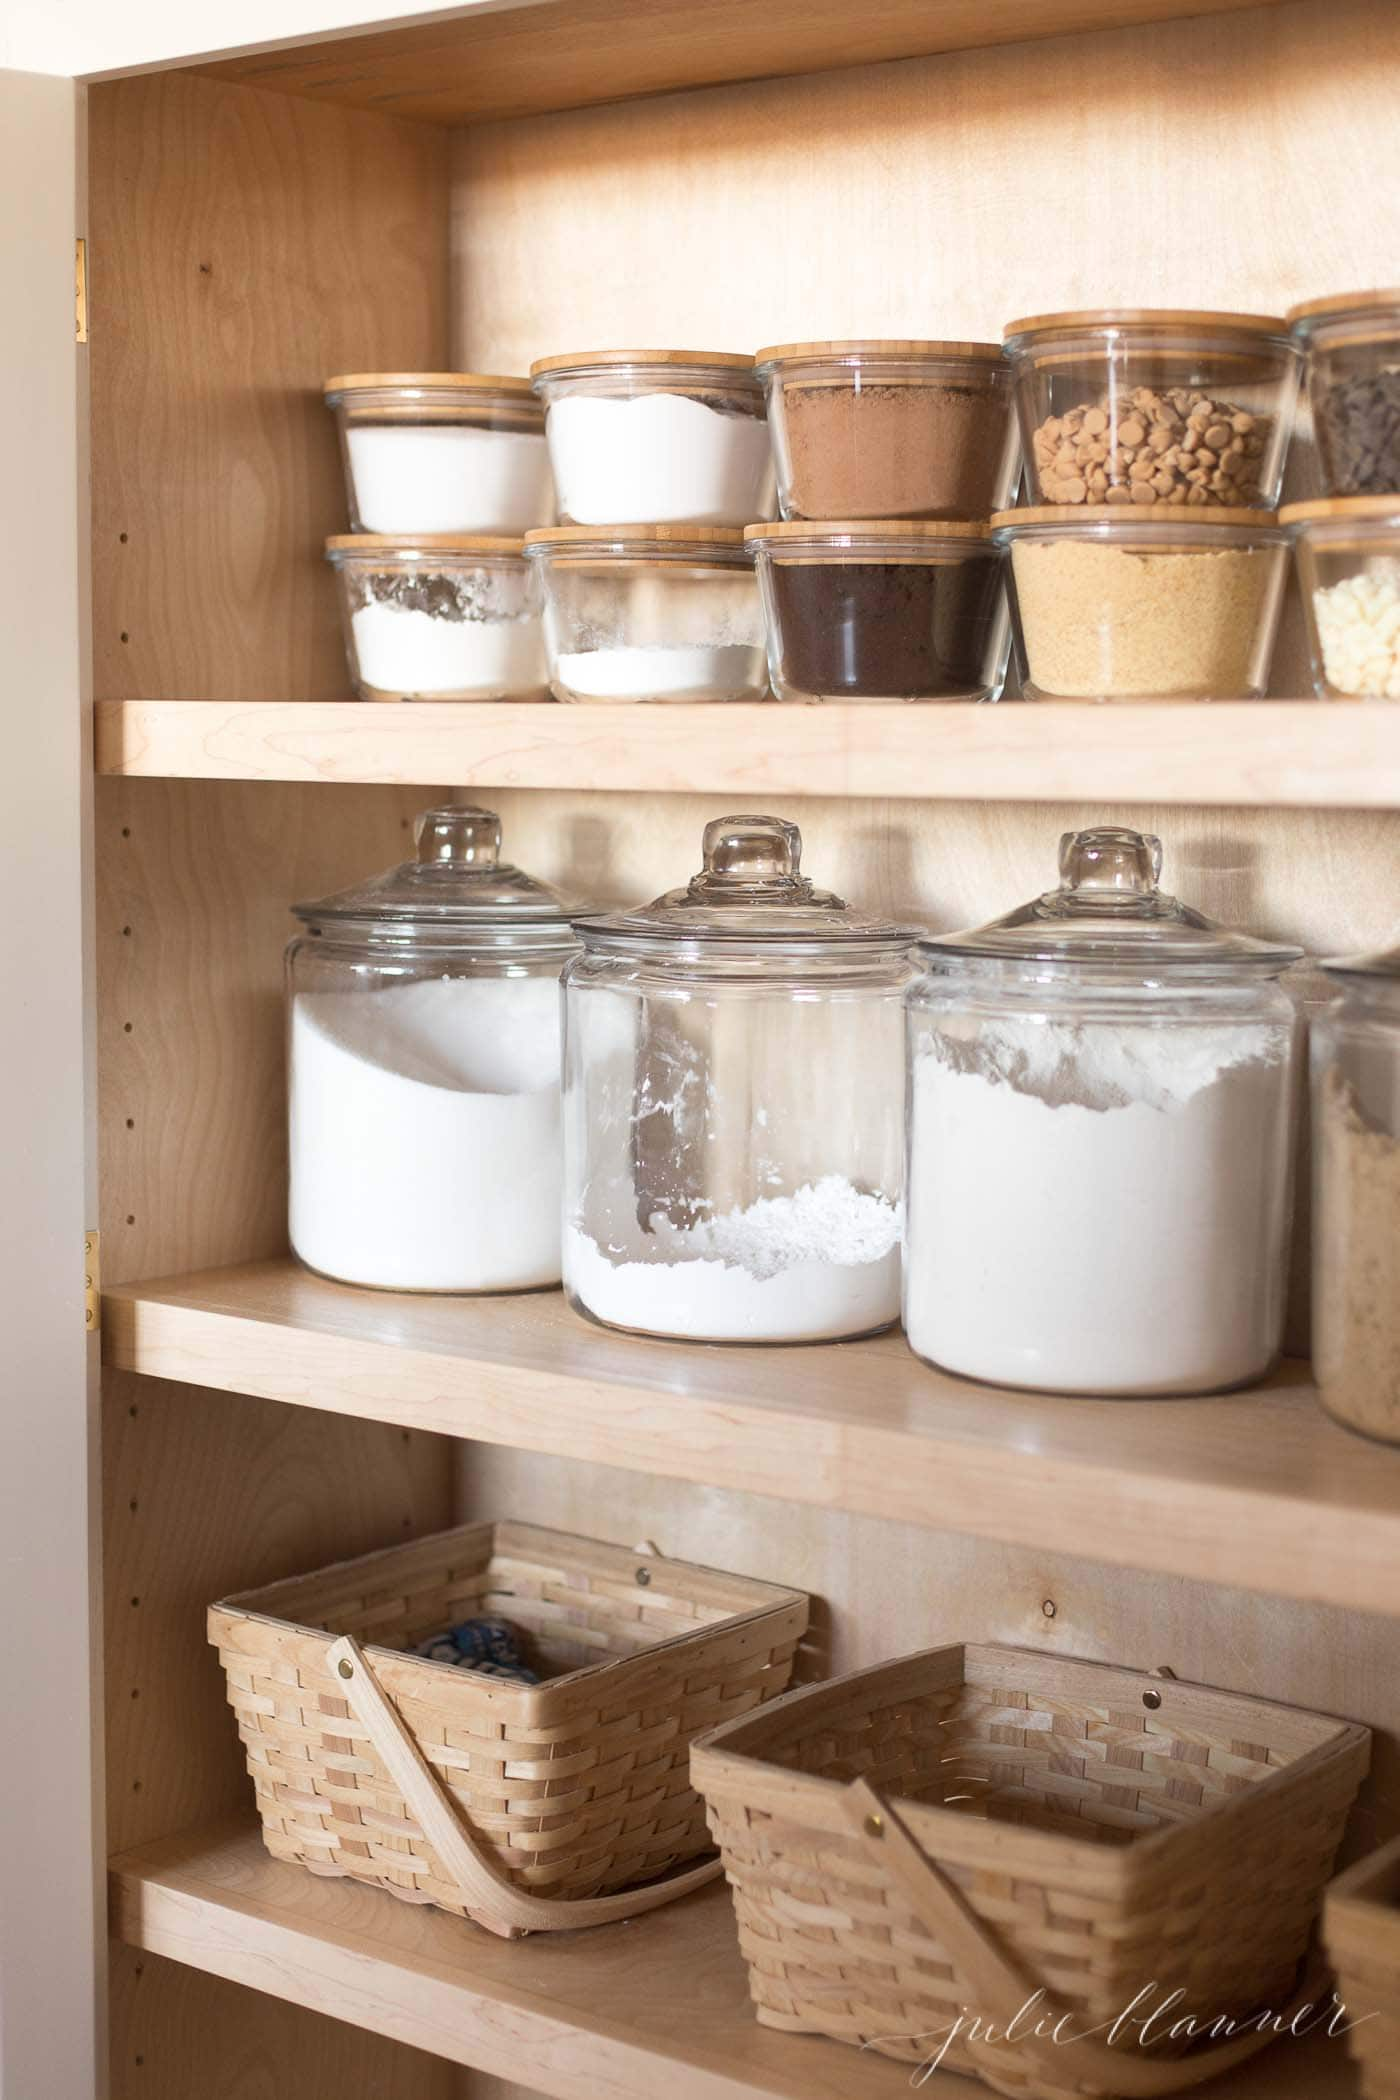 Looking inside a pantry with beautifully organized baking necessities.